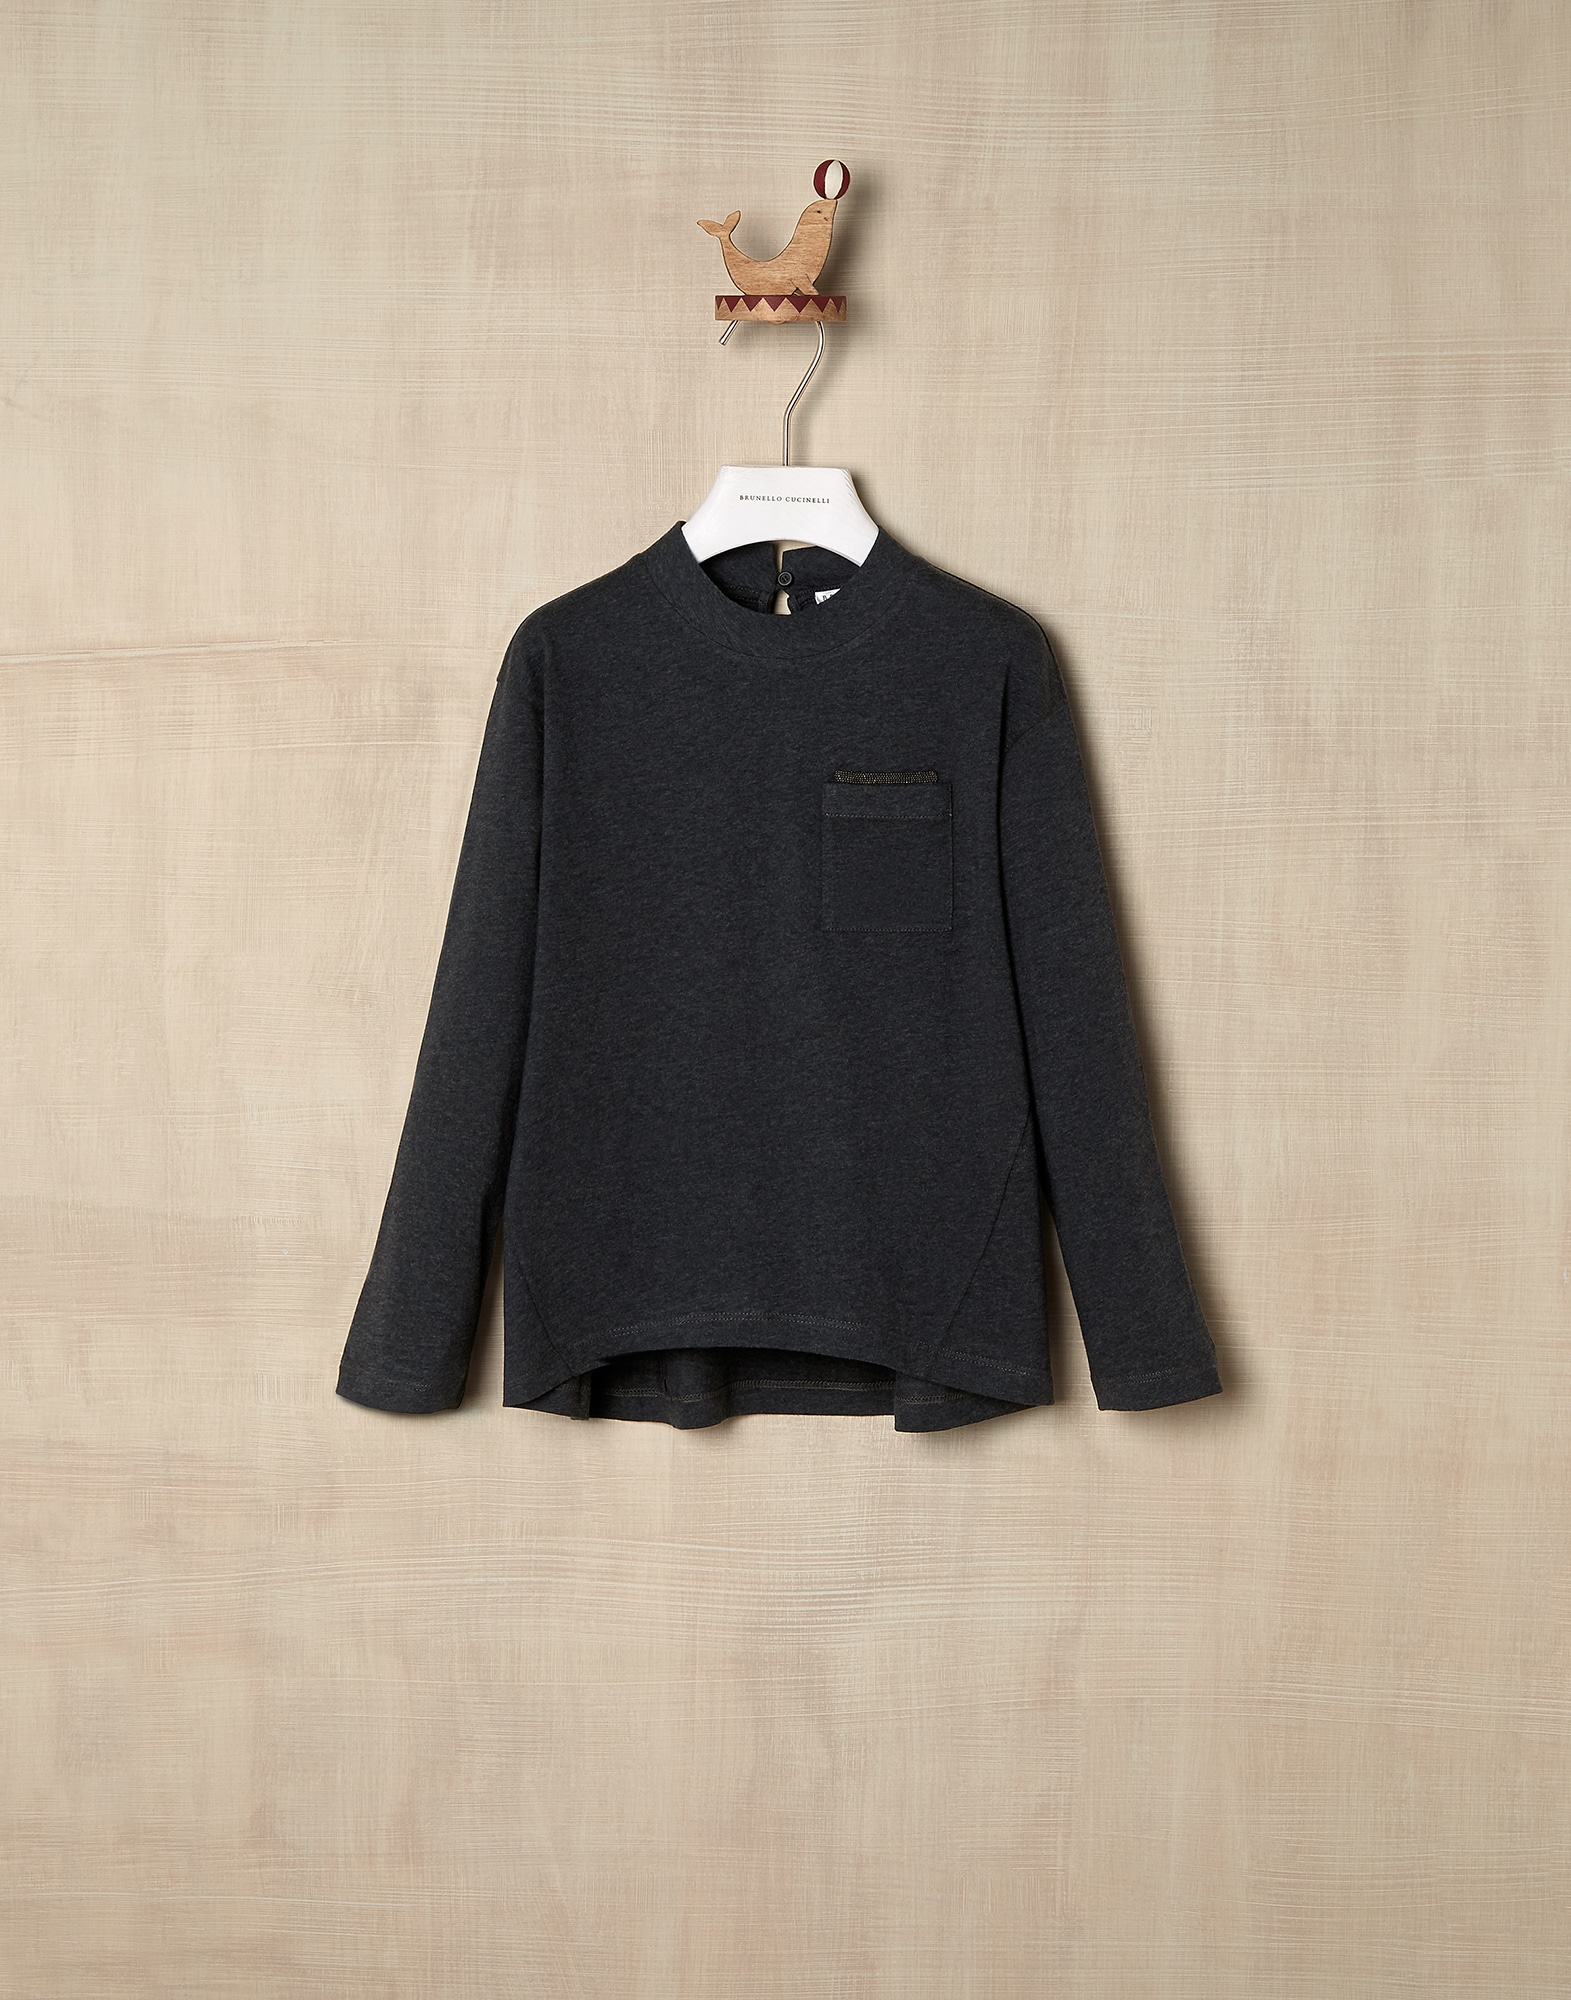 T-Shirt Anthracite Girl 0 - Brunello Cucinelli